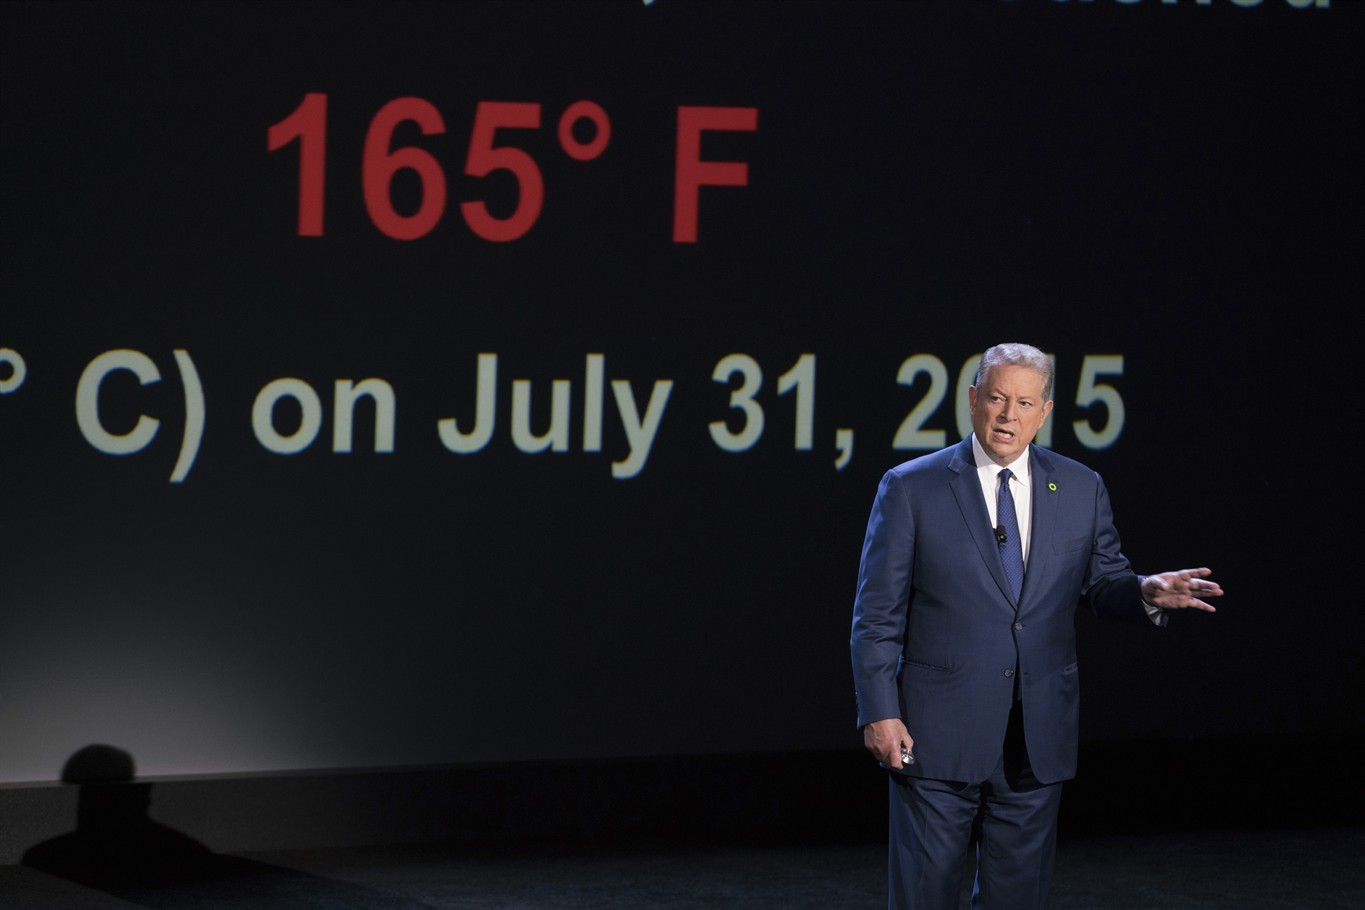 Al Gore has nothing new to say in 'An Inconvenient Sequel'